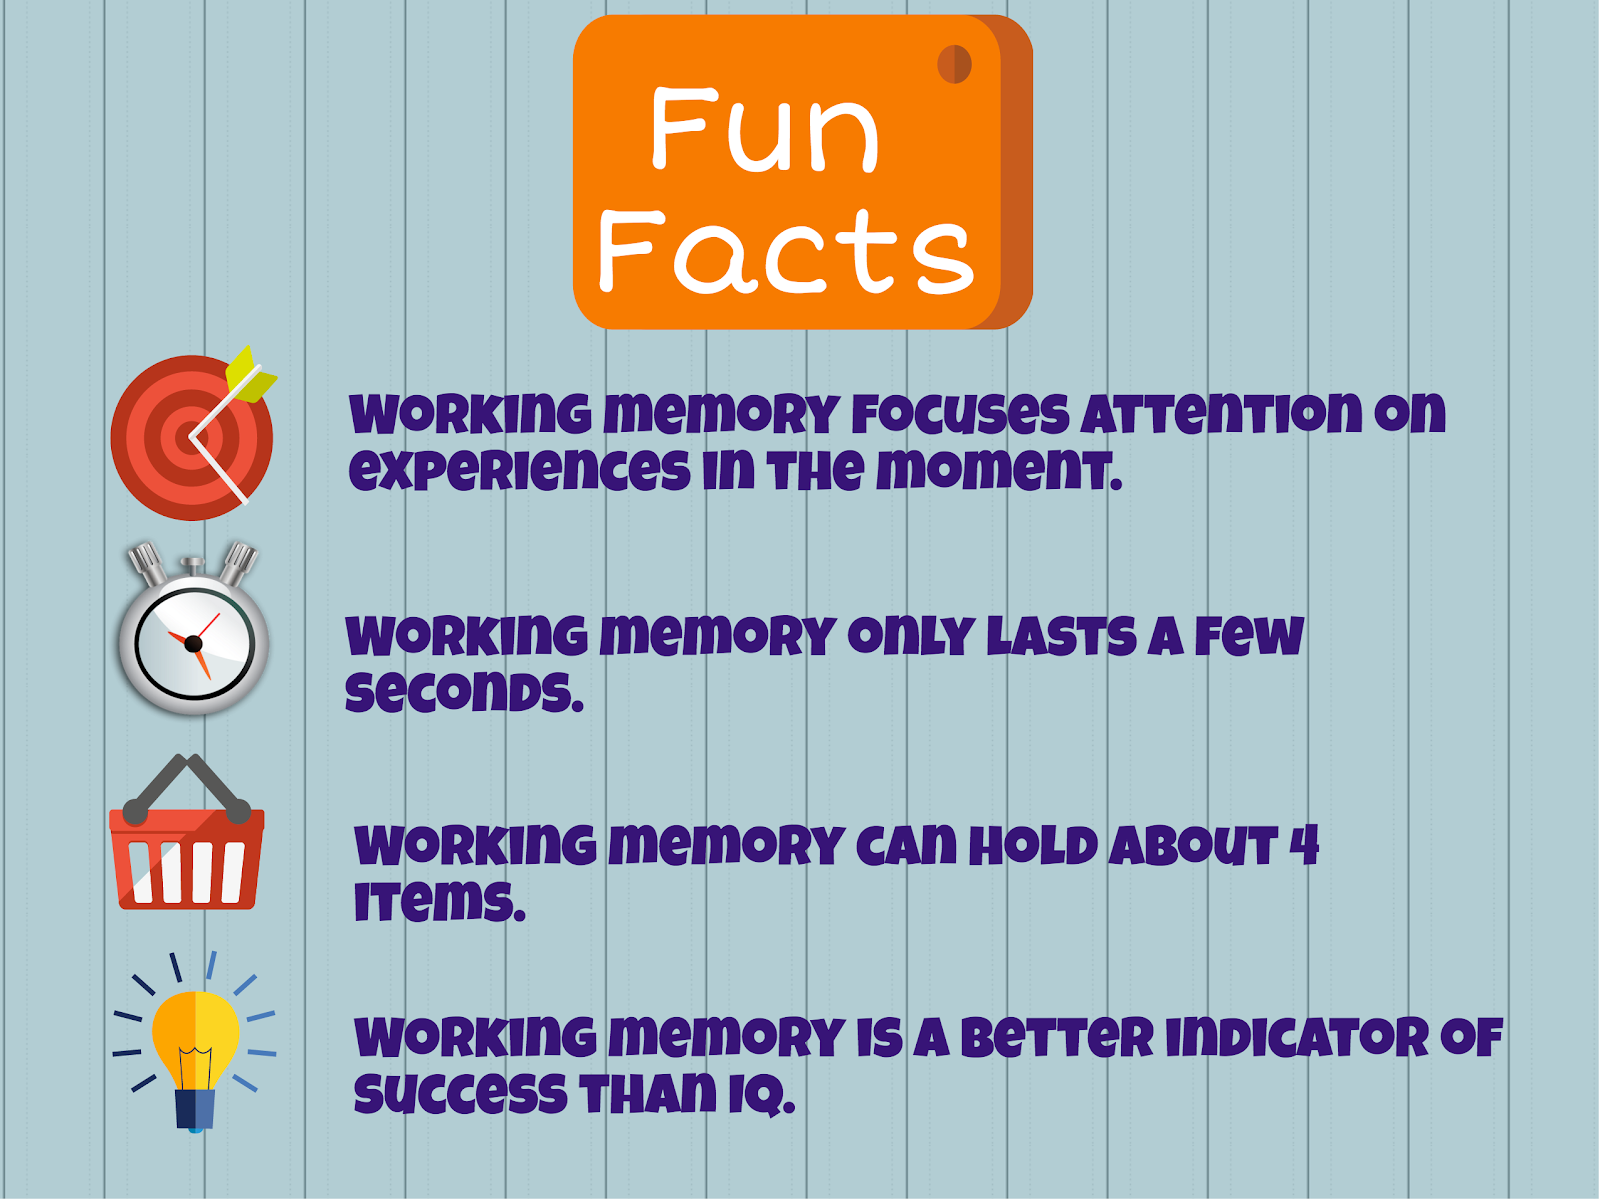 Facts about working memory